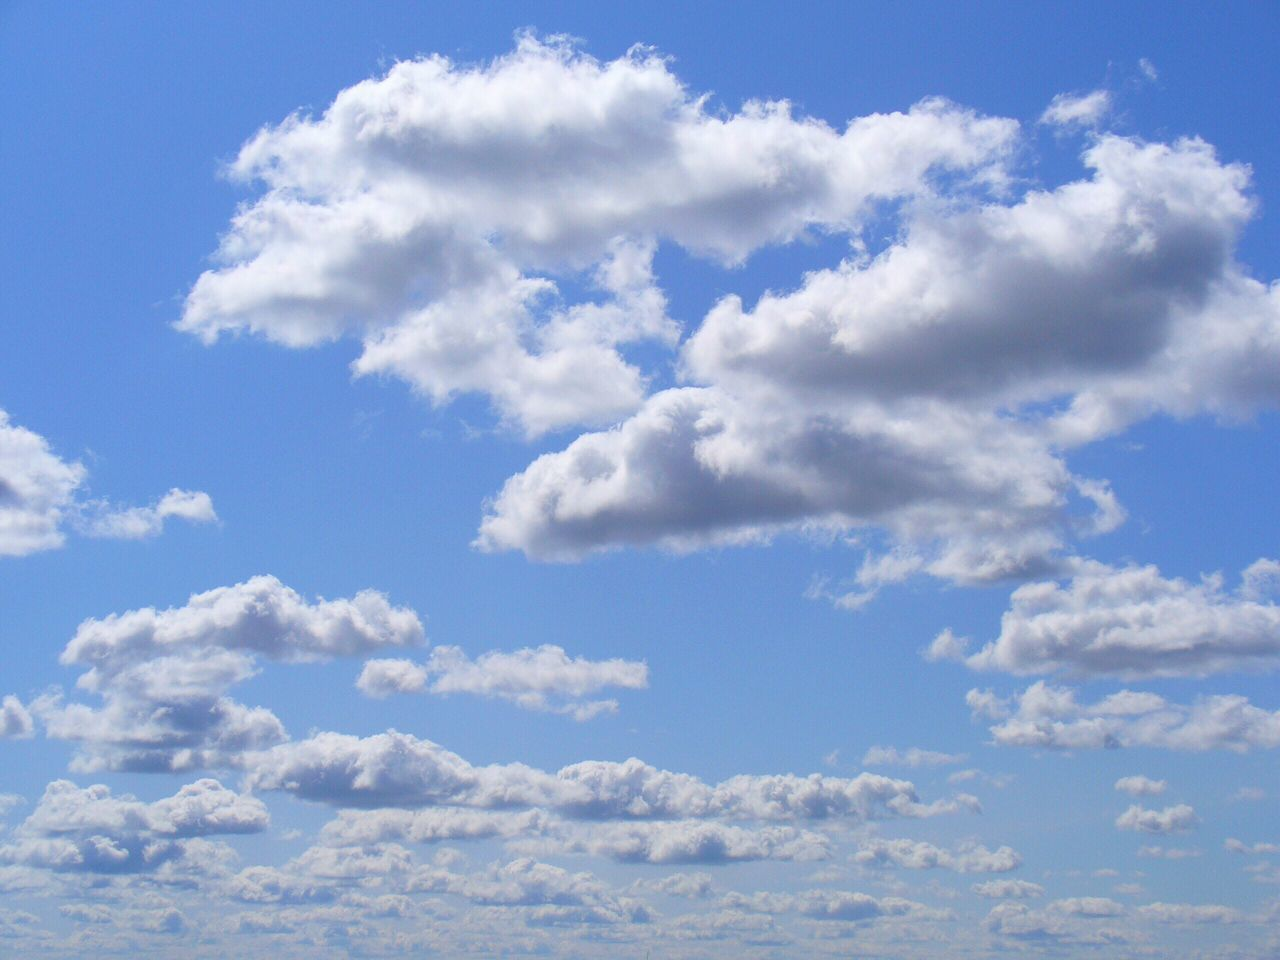 Cloud Clouds Clouds And Sky Cloud - Sky Sky Blue Sky Nature Blue Fluffy Low Angle View Cloudscape Beauty In Nature Tranquility Cumulus Cloud Softness Day No People Sky Only Scenics Backgrounds Outdoors